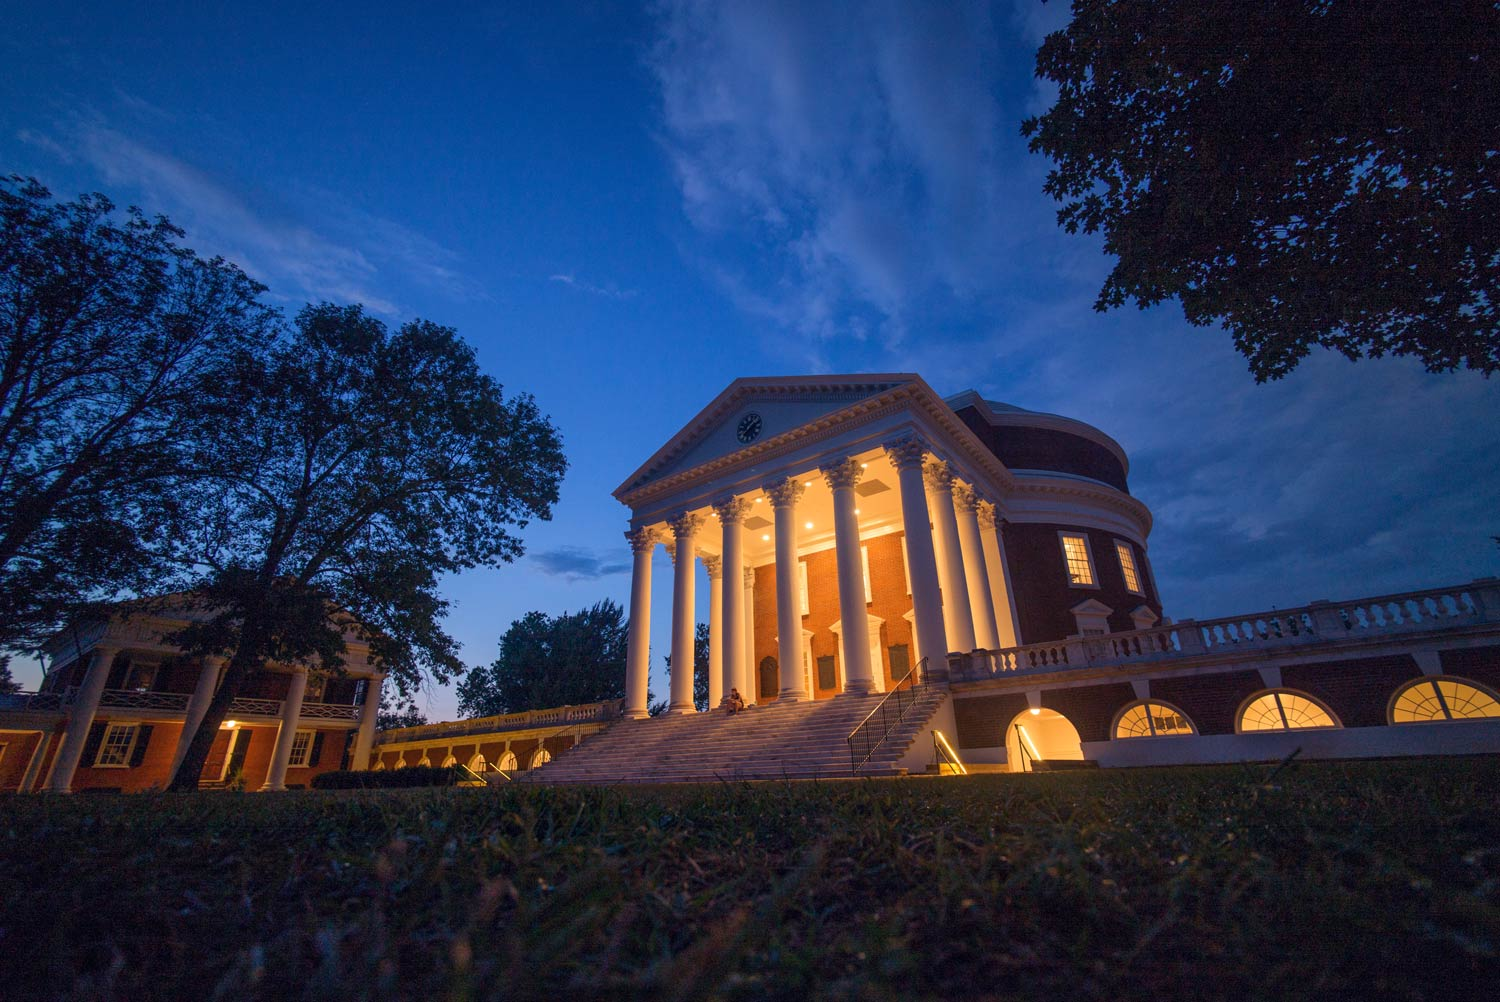 UVA's Lawn and Rotunda at Night